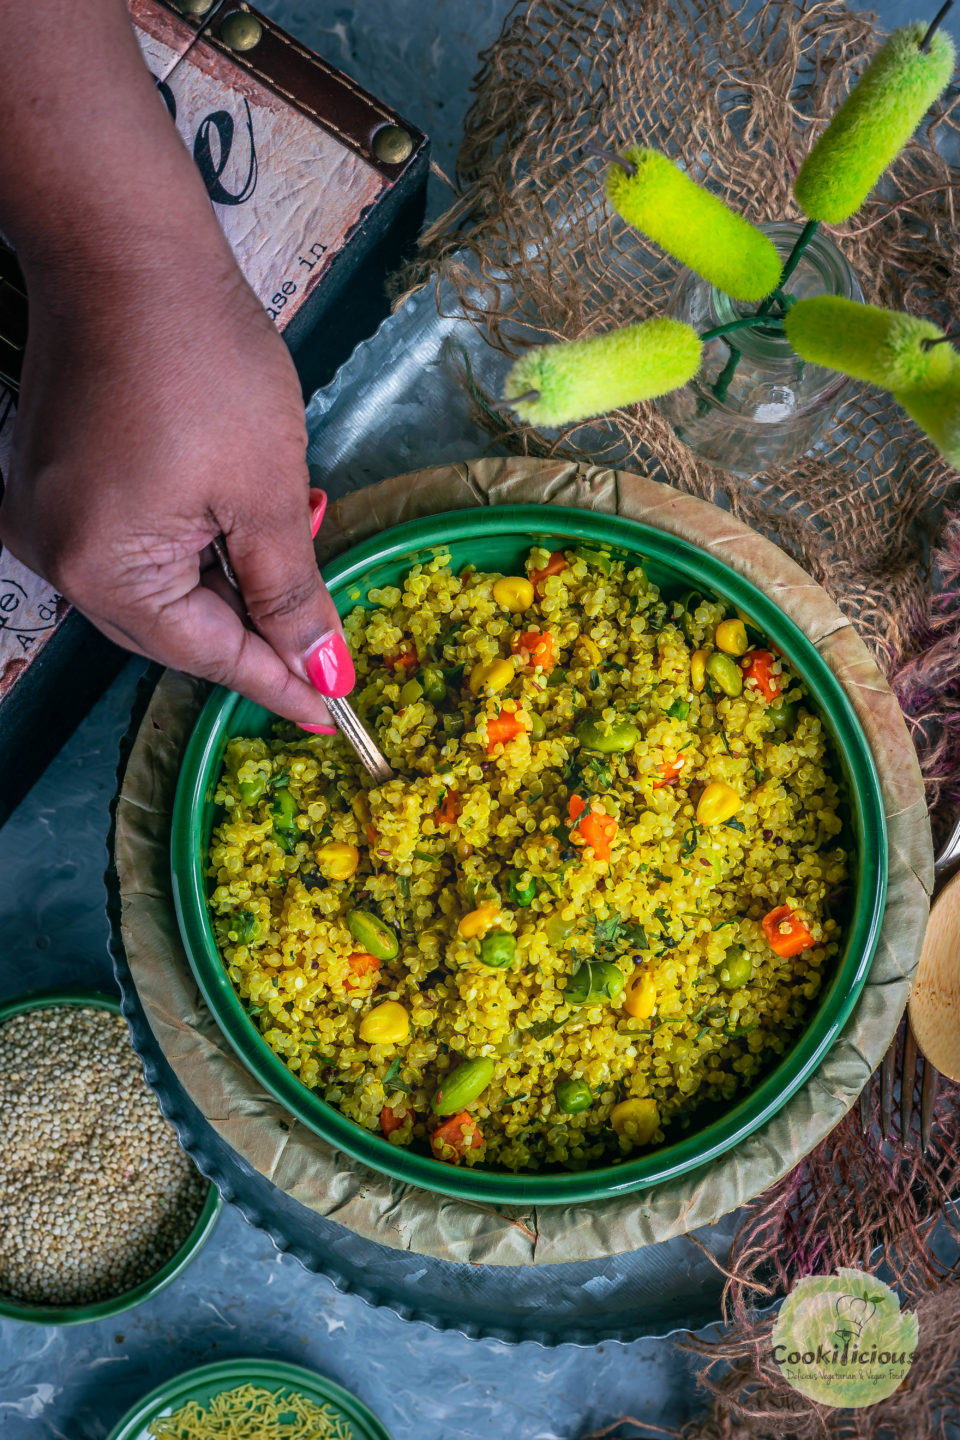 a hand holding a spoon digging into a bowl of Vegetable Quinoa Upma